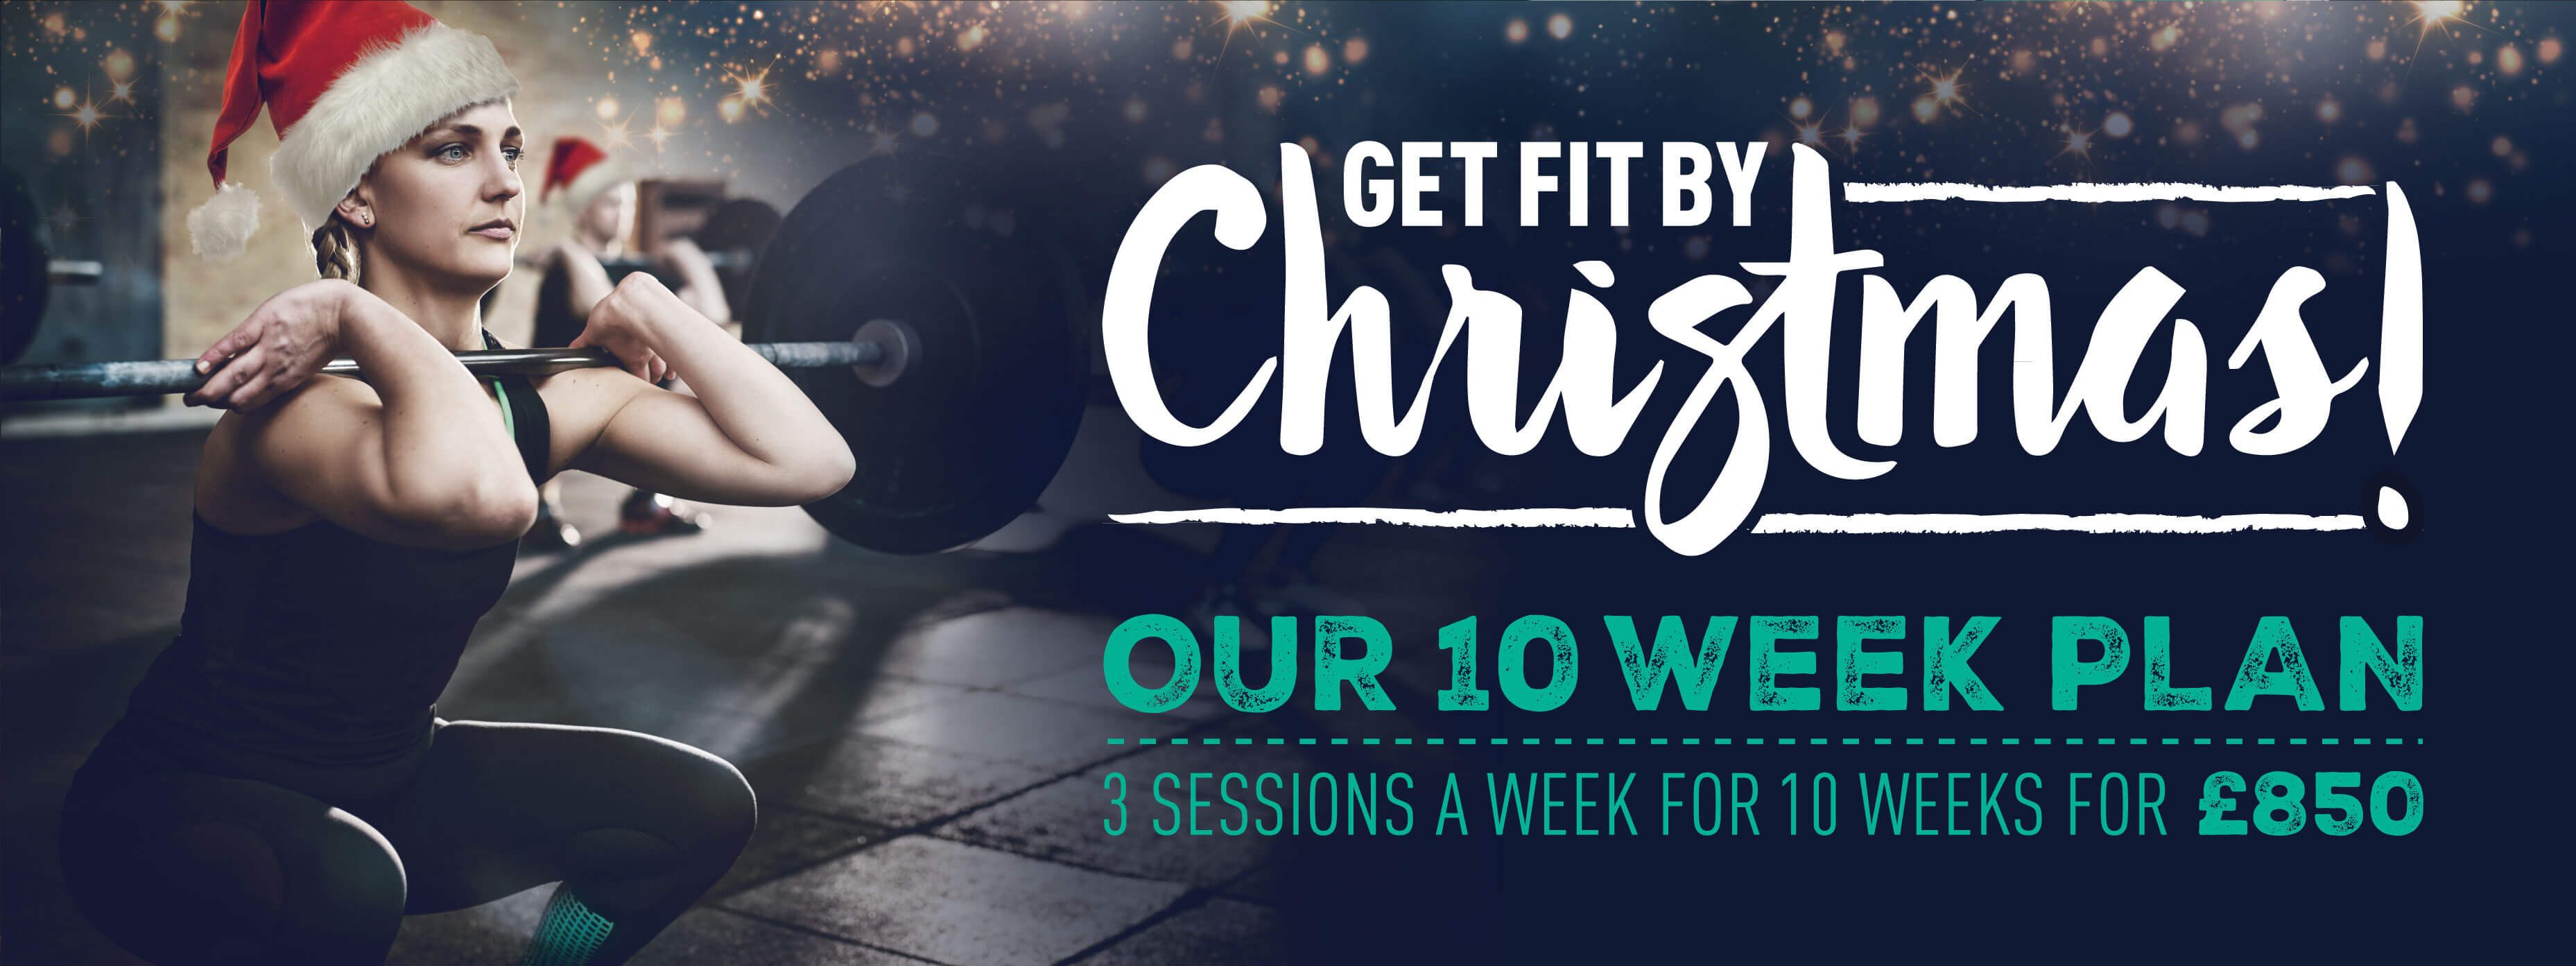 Web-Banner-Get-Fit-by-Christmas-Personal-Training-at-The-Fitting-Rooms-Gym